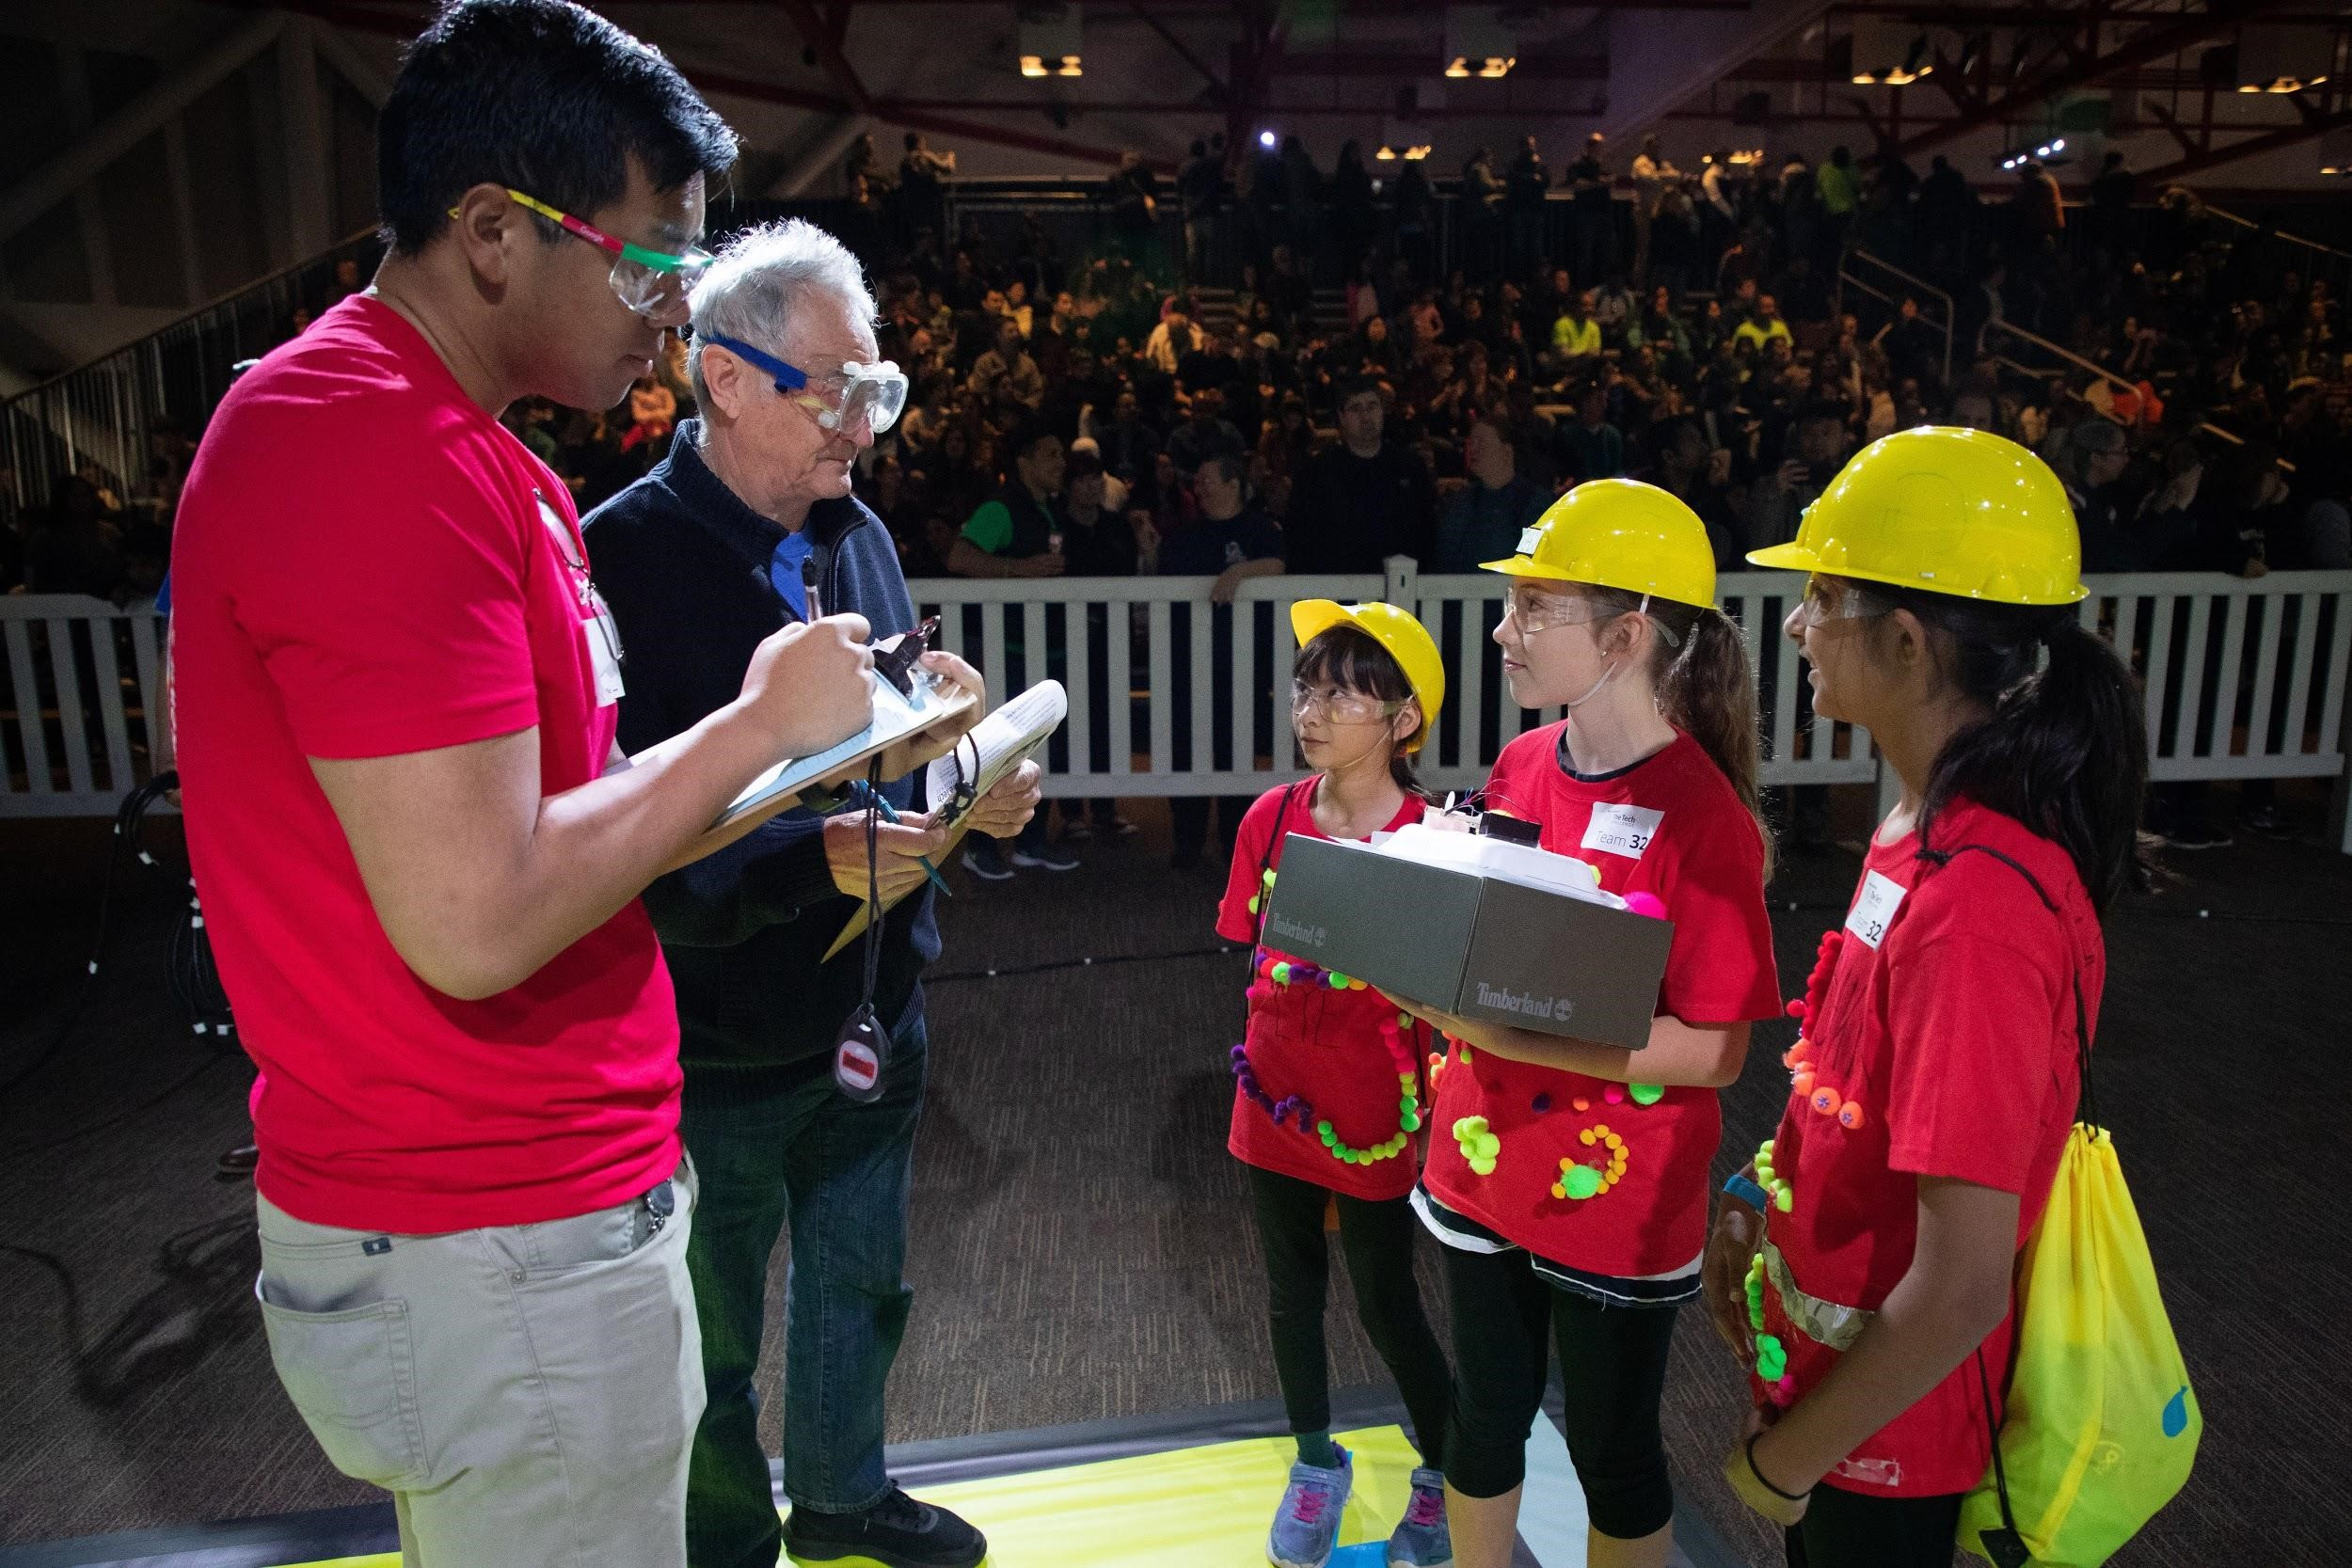 Judges interview a team during The Tech Challenge showcase